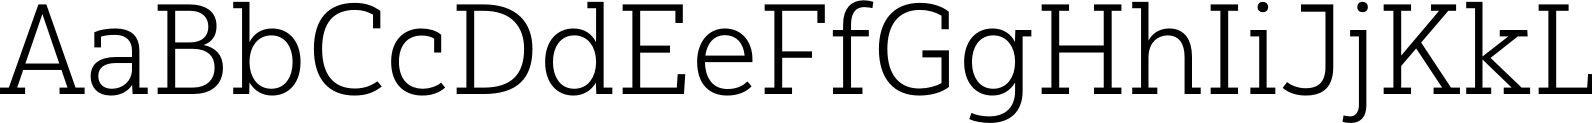 Yorkten Slab Normal Light Font